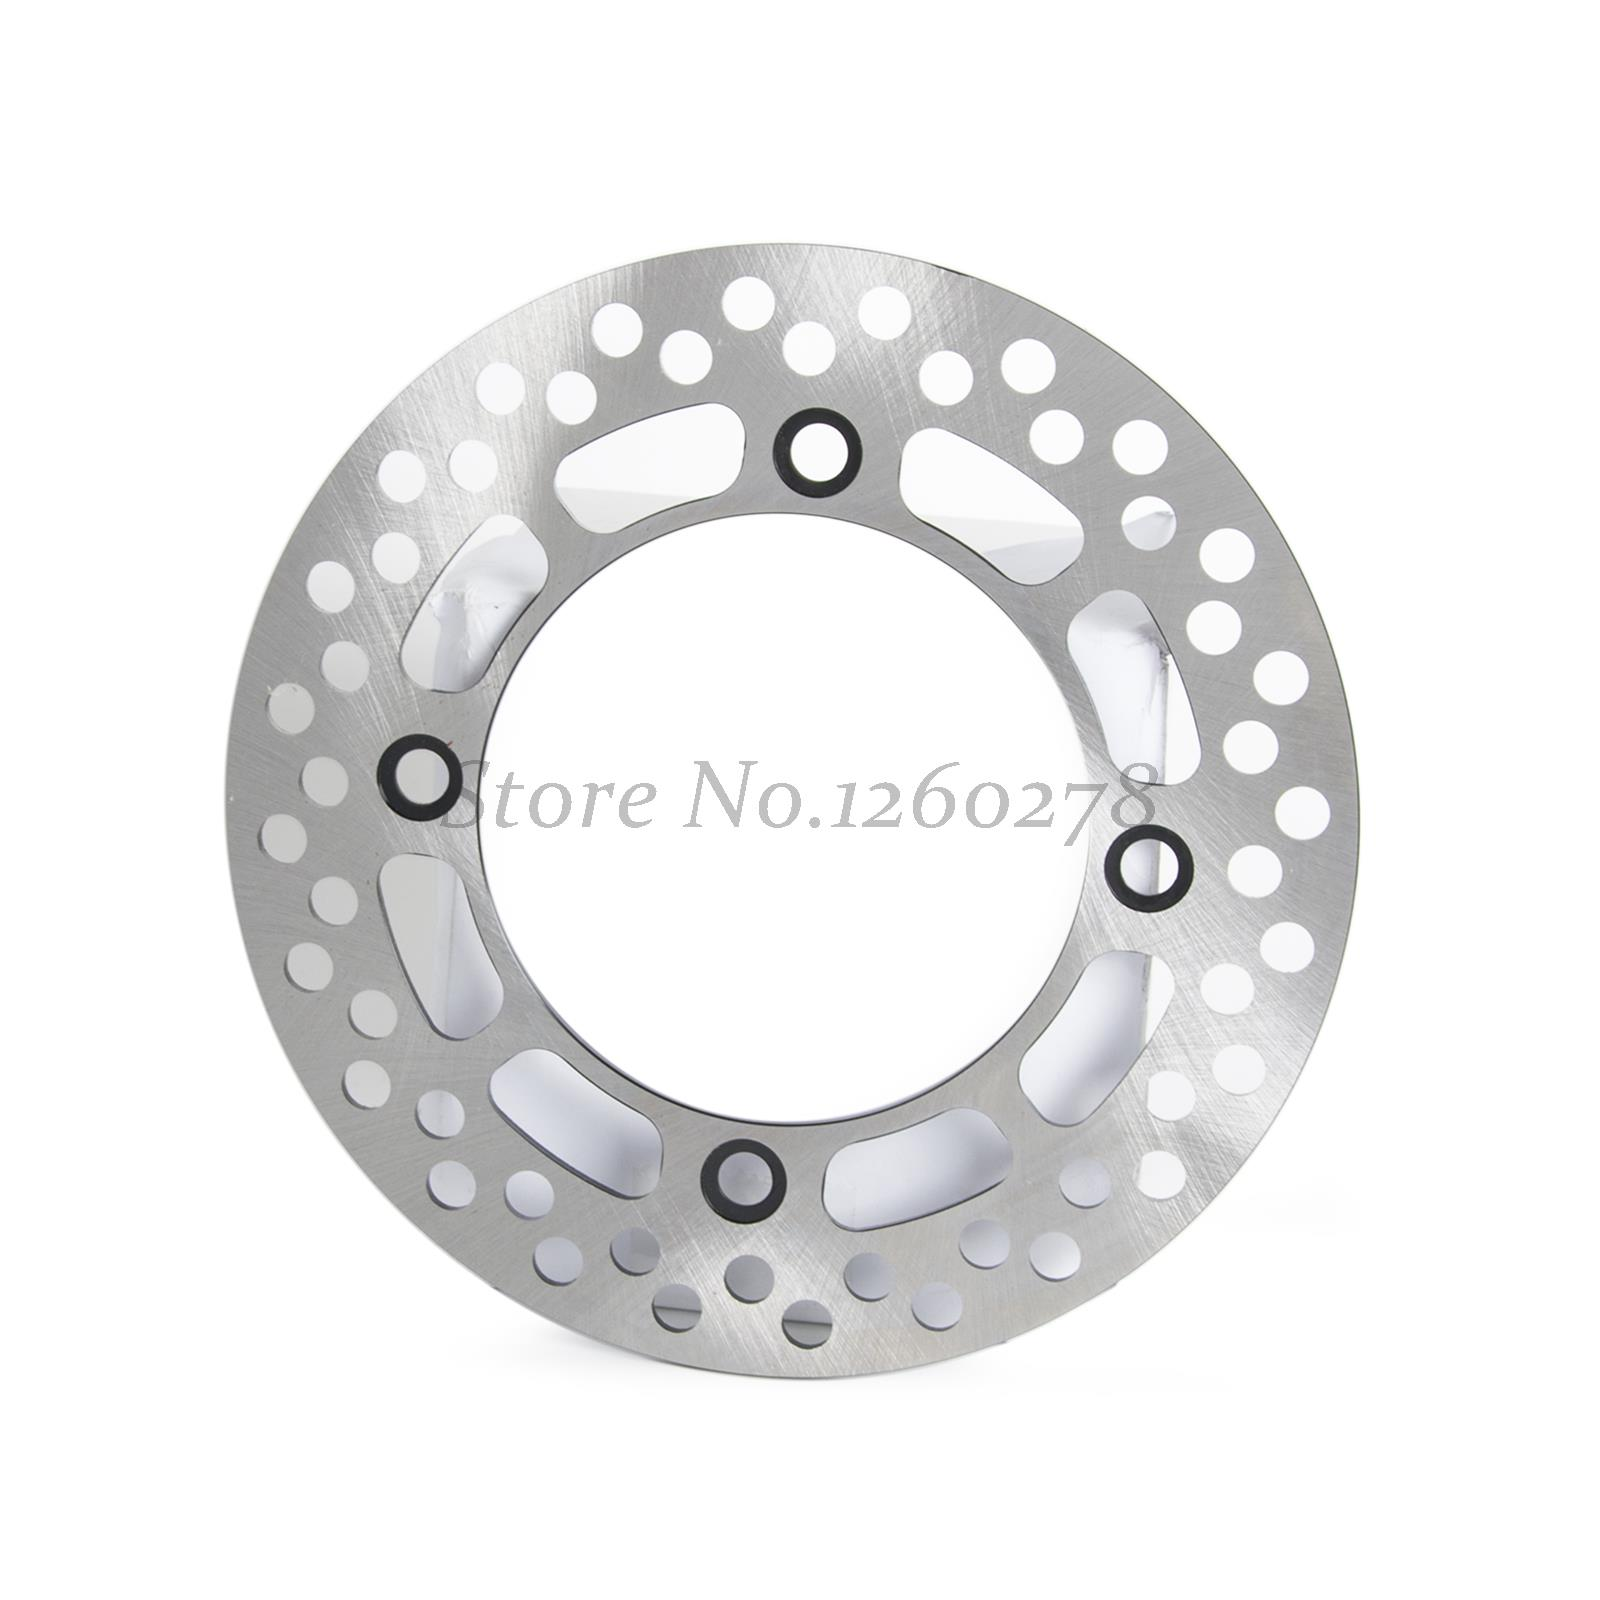 Motorcycle Rear Rotor Brake Disc For Yamaha WR125 WR250 YZ125 YZ250 WR450F YZ450F WRF YZF 125 250 426 450 WR YZ 125F 250F 450F oversize 270mm front rear brake disc rotor bracket adaptor for yamaha yz 125 250 426 450 f wr125 wr250 wr426f wr450f 98 14 99 00